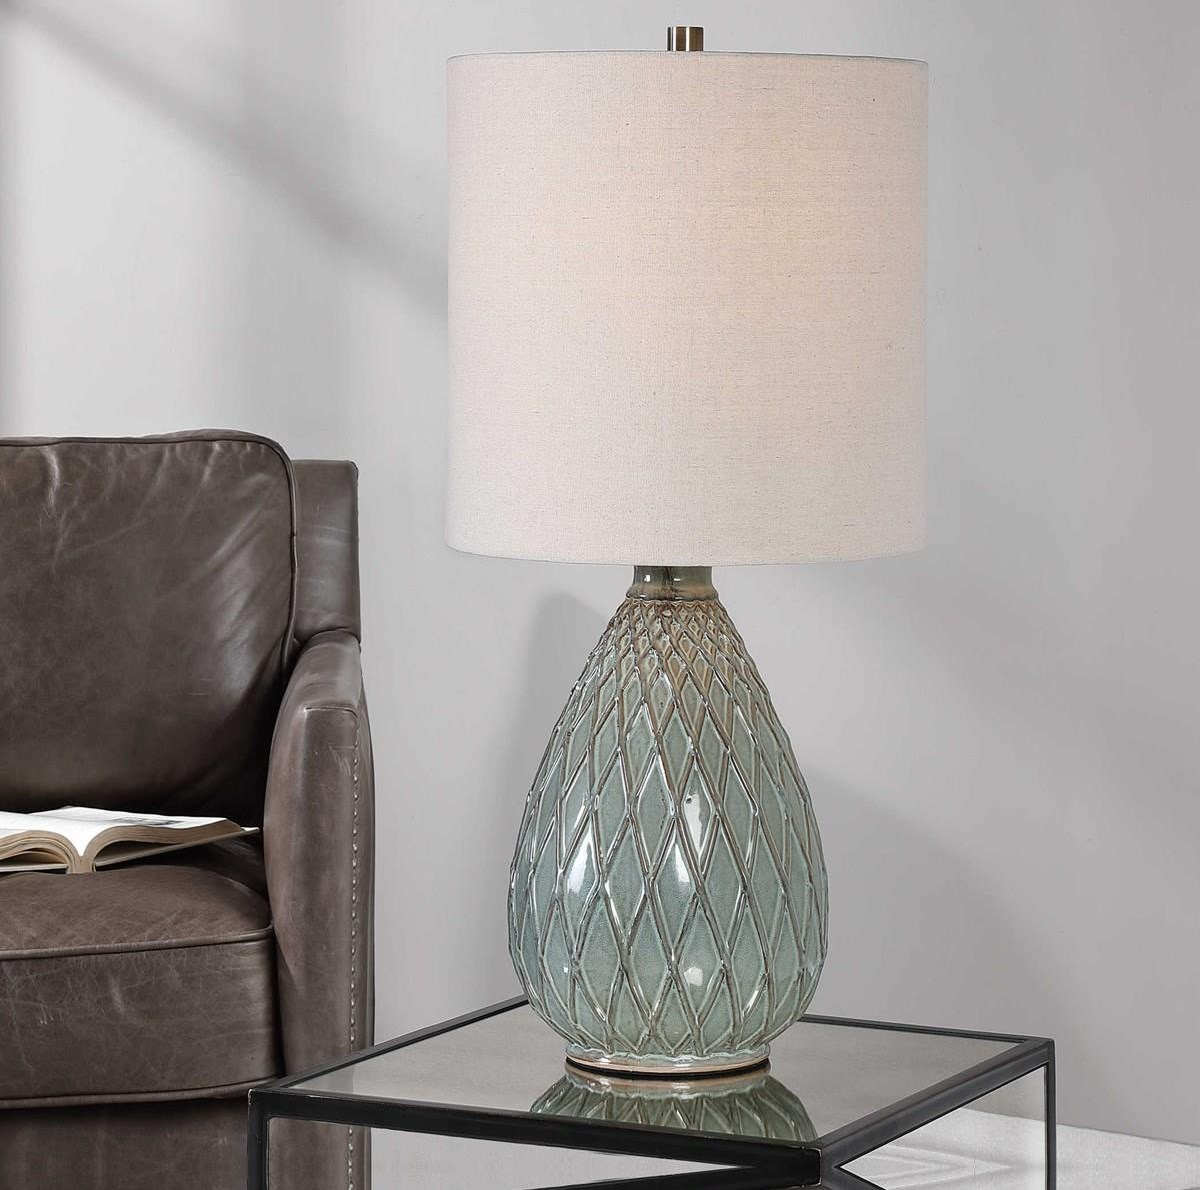 Table Lamps HARMONY TABLE LAMP by Unique at Walker's Furniture